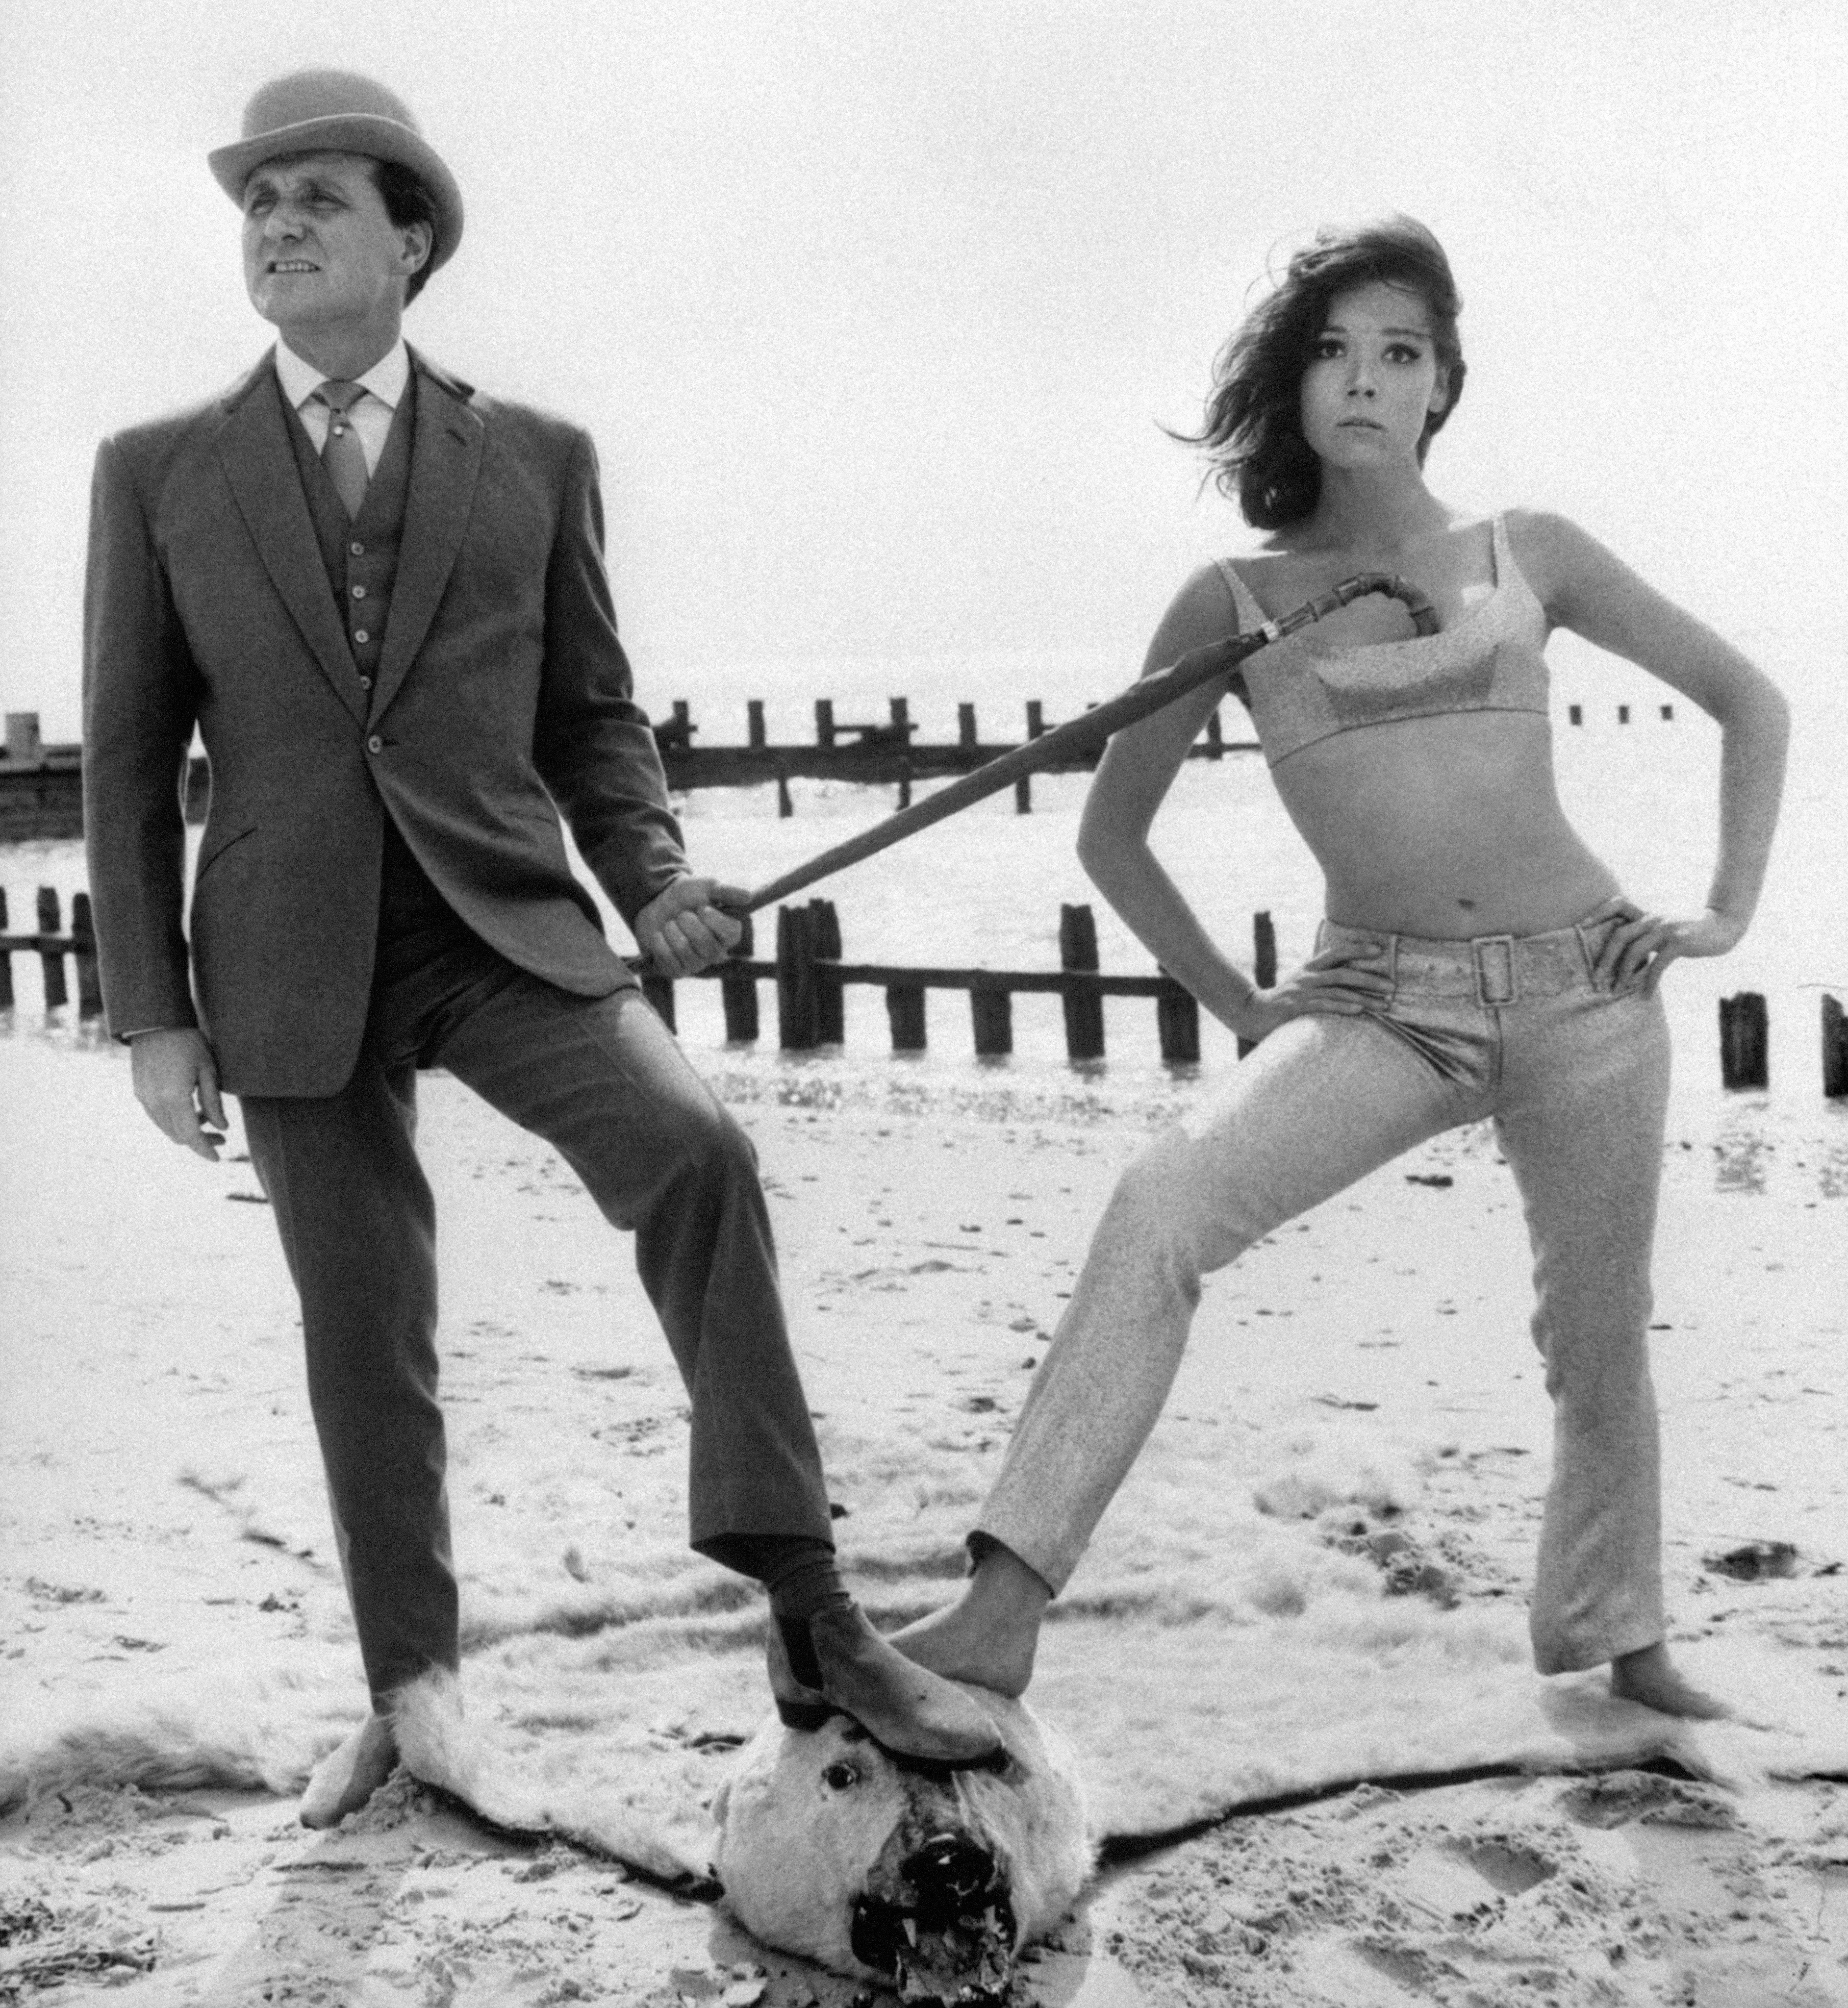 File dated 27.9.65 of actor Patrick Macnee, as John Steed, and Diana Rigg as Emma Peel, in the sixties hit series The Avengers.  Award-winning actor Ralph Fiennes is to  play pinstriped hero John Steed, opposite Sean Connery as the diabolical villain Sir August de Wynter, with Uma Thurman playing Emma Peel, in a film remake of the classic series, it was announced today (Friday